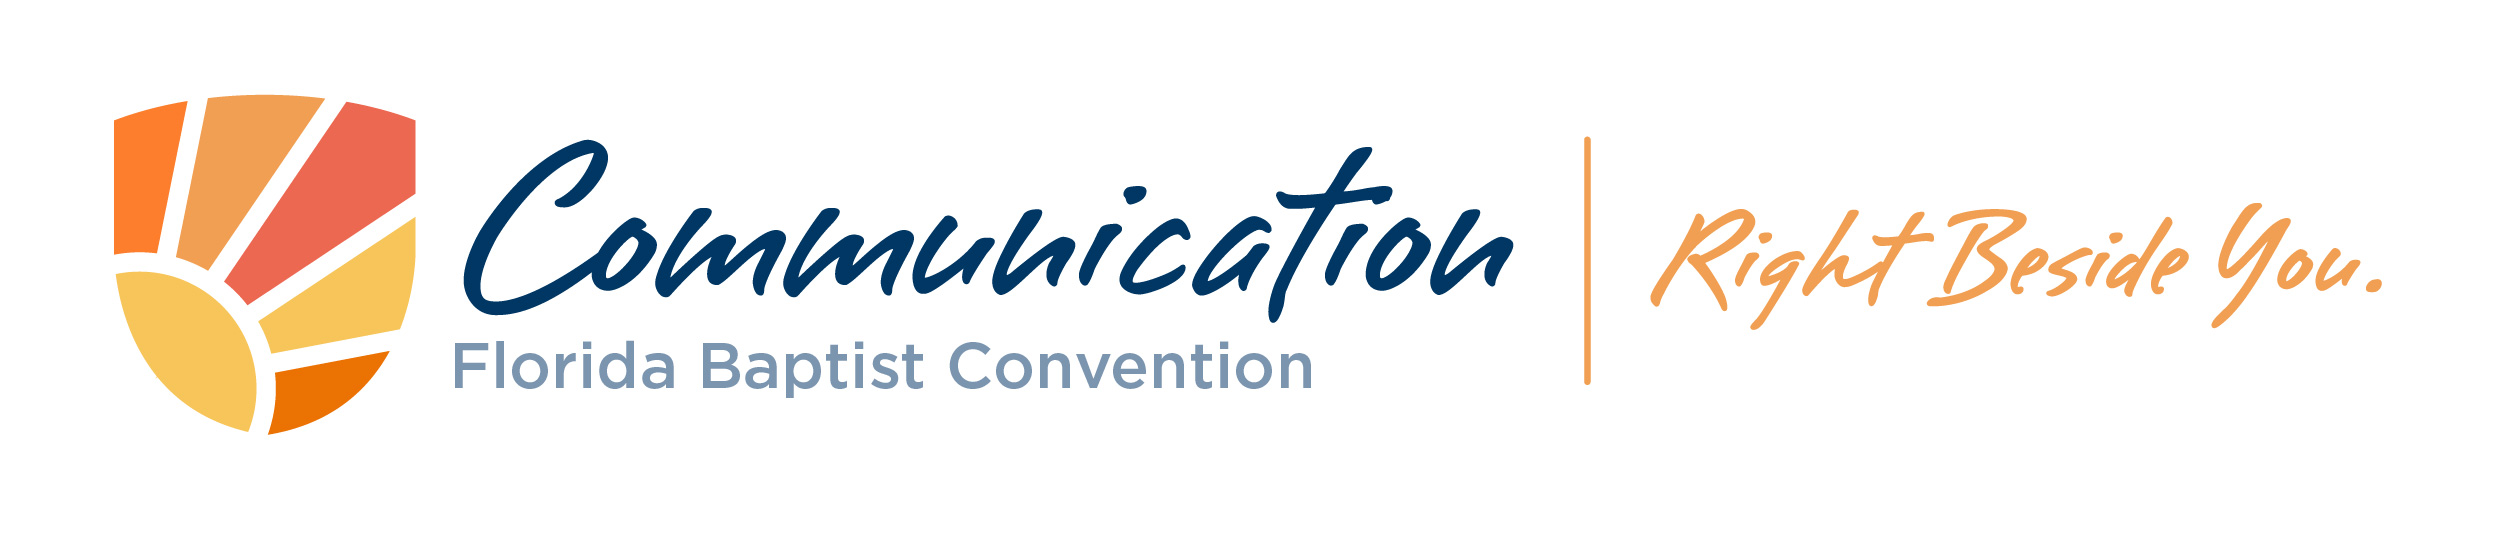 Florida Baptist Convention, Communication Network